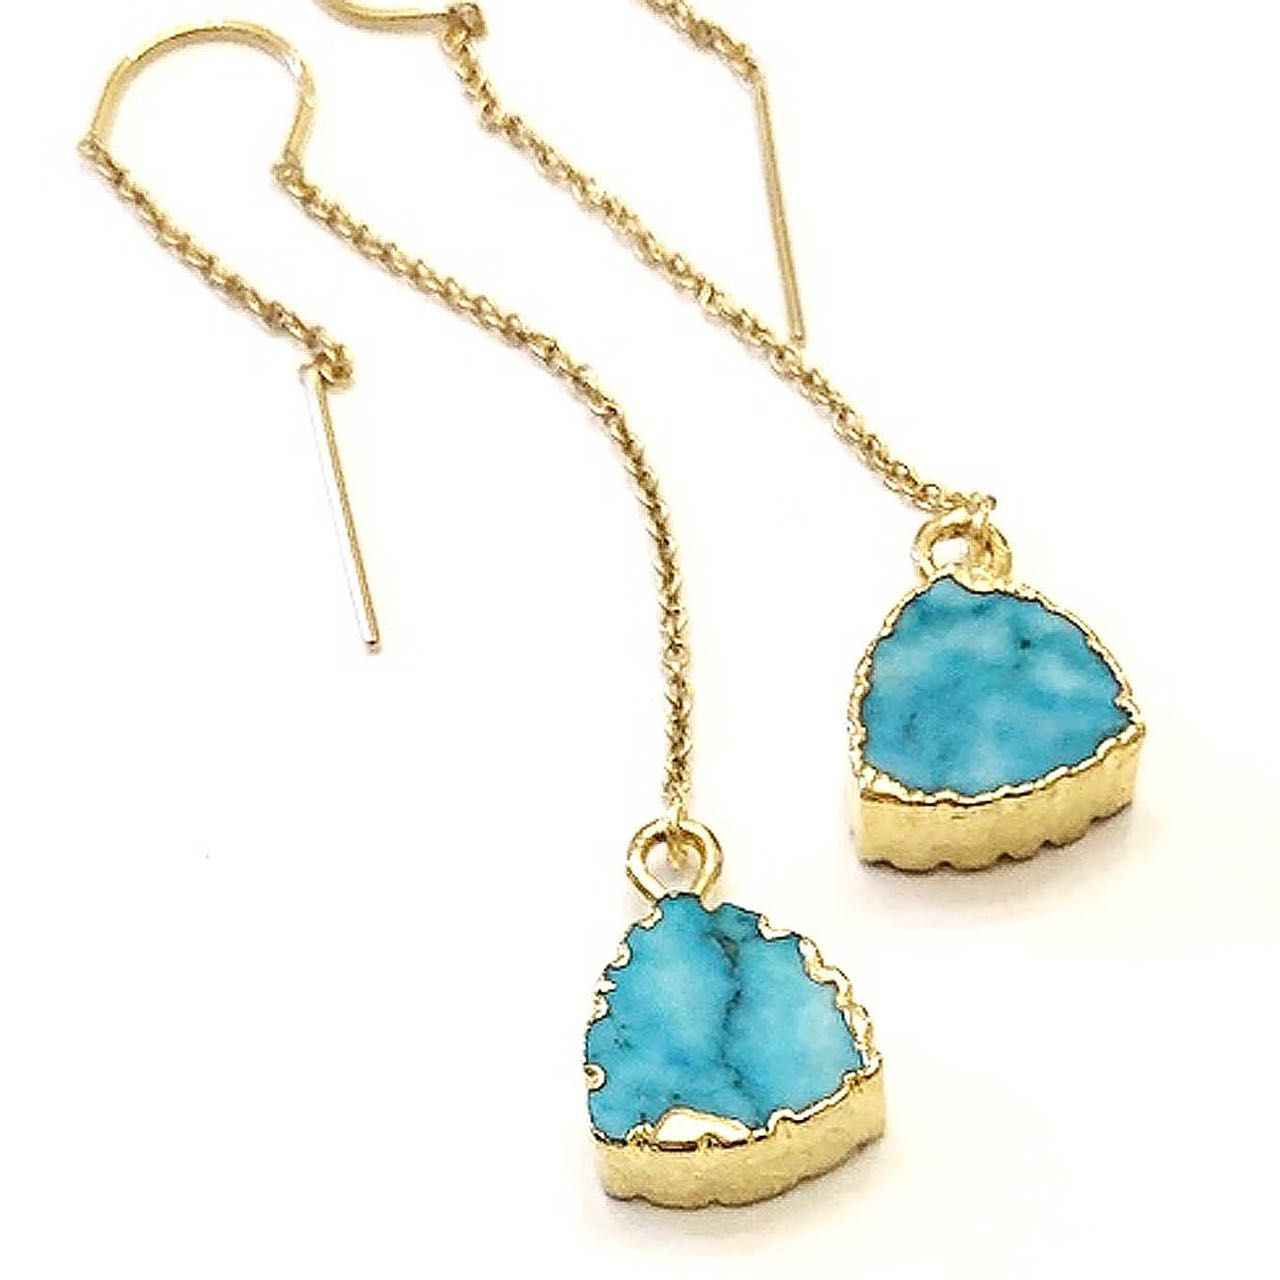 2Dy4: Turquoise Trillion Threader Earrings